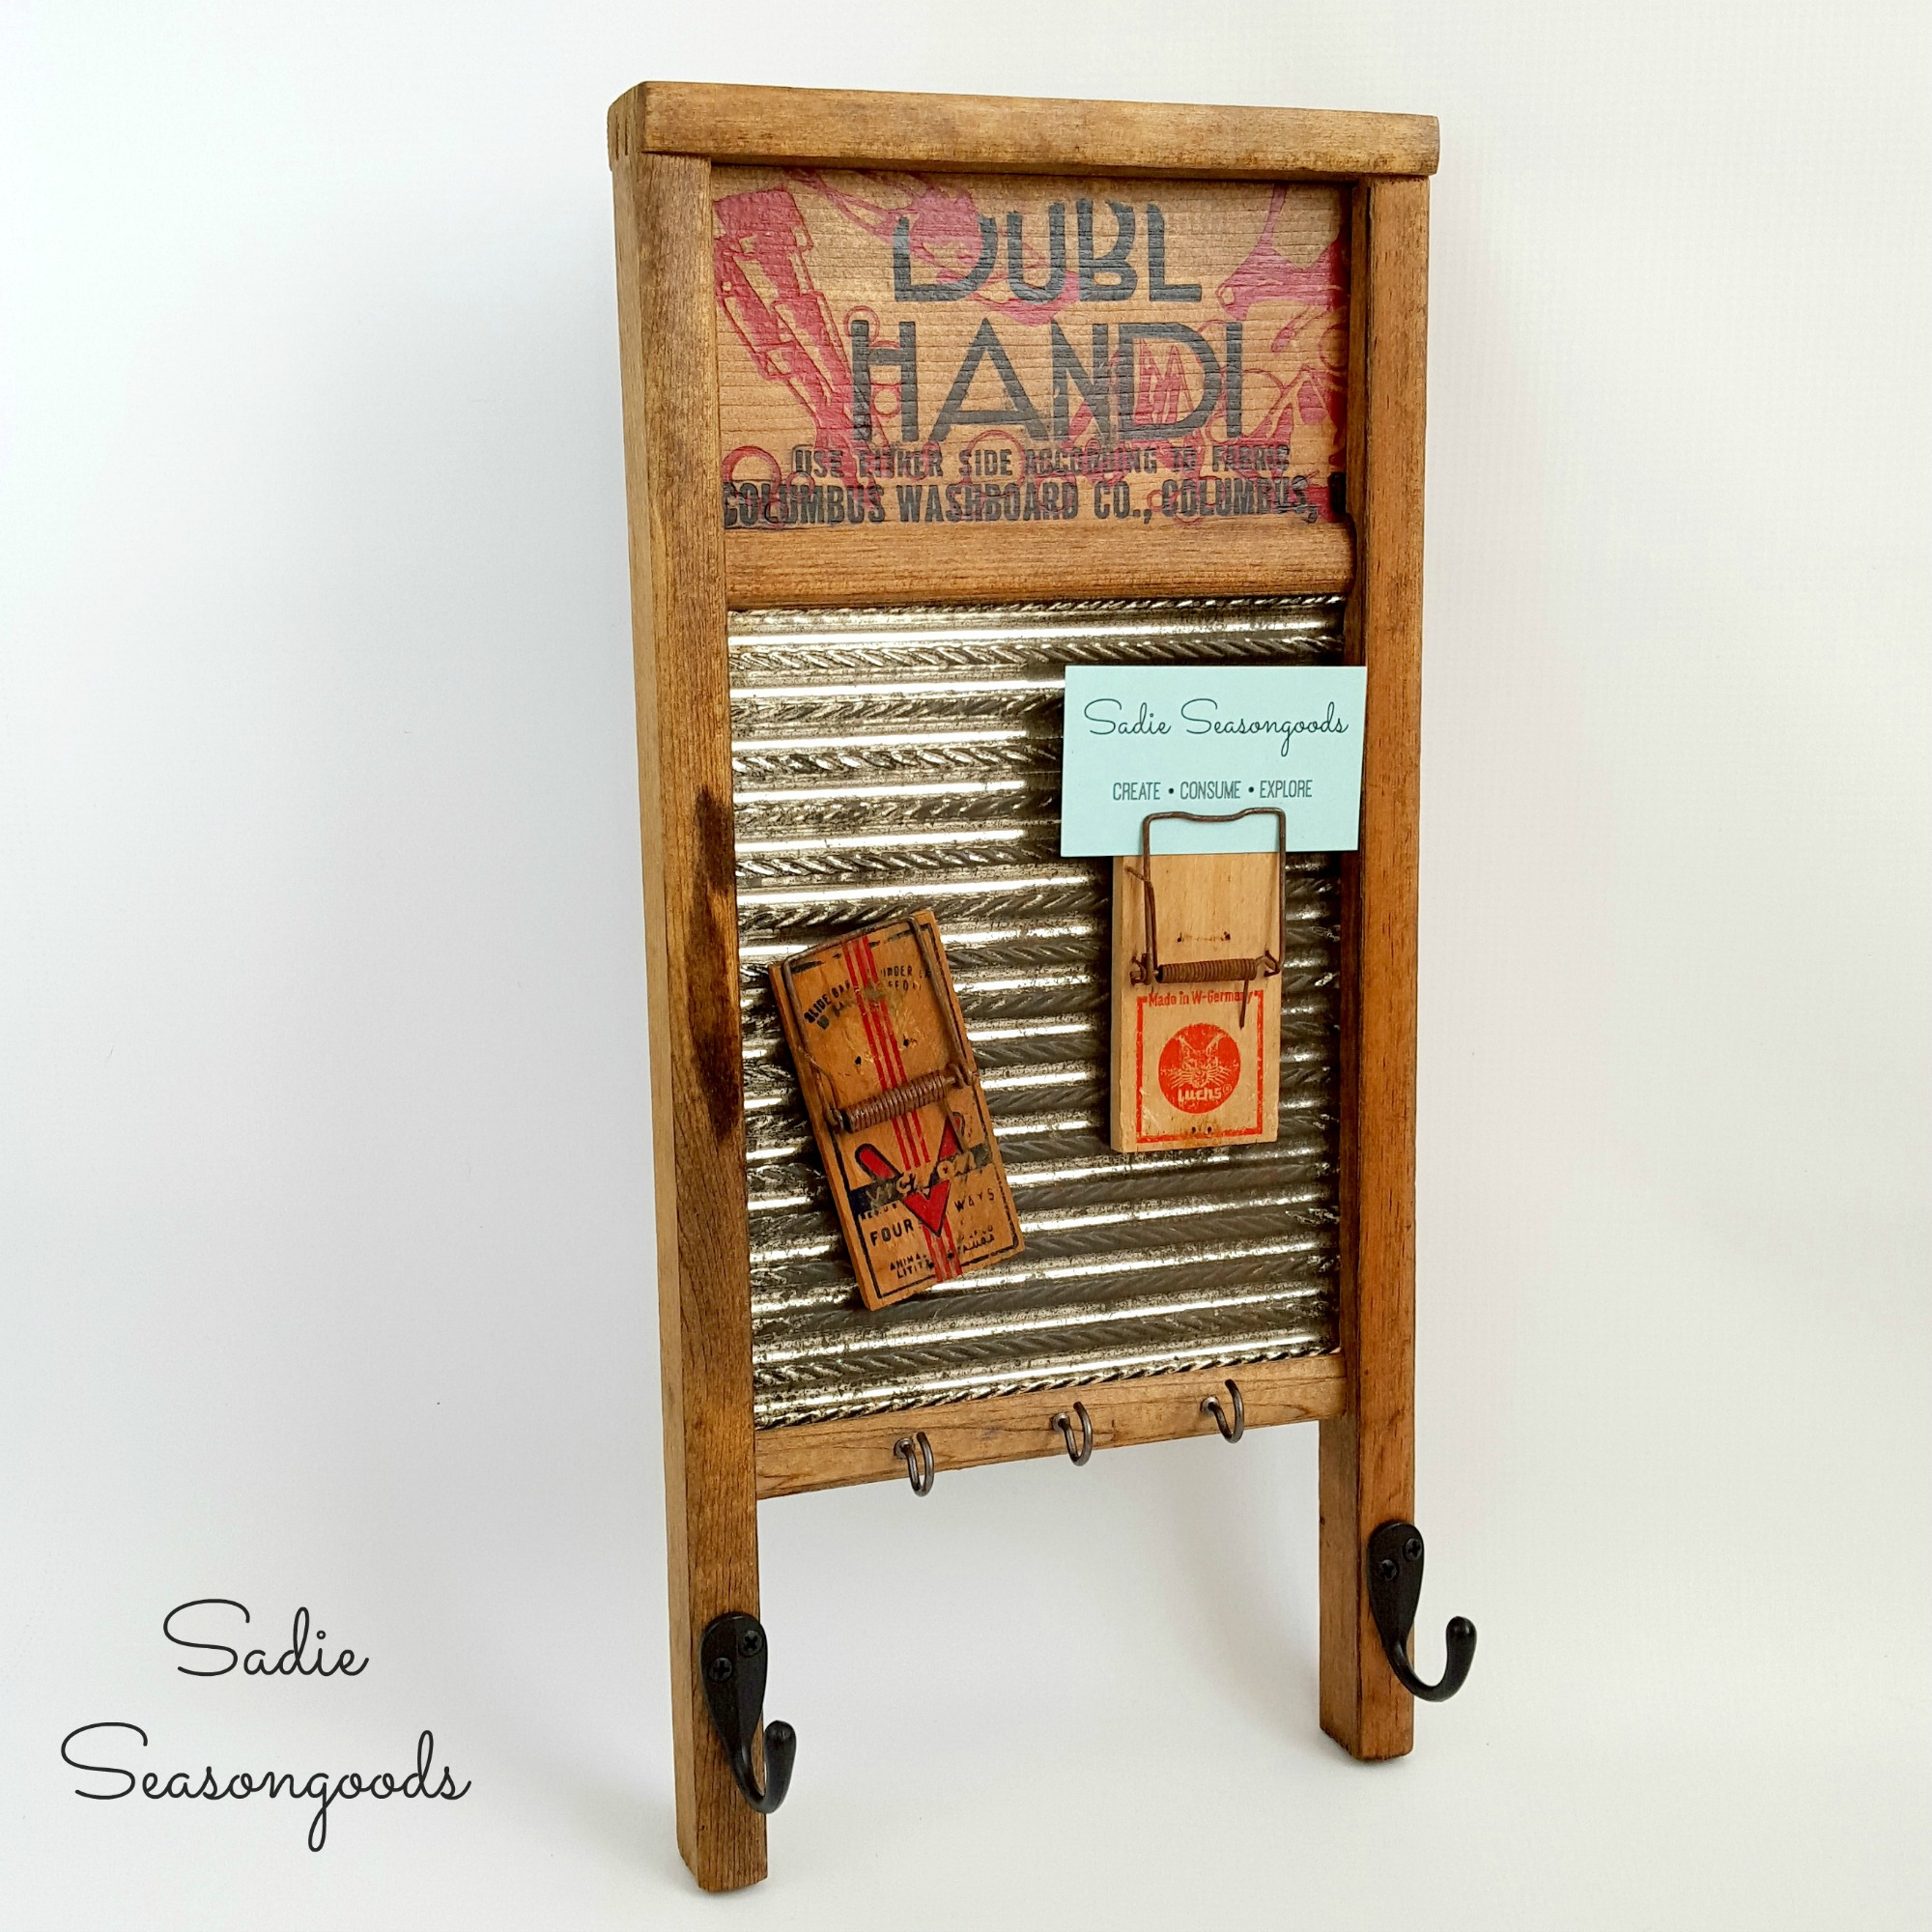 http://thecottagemarket.com/wp-content/uploads/2016/05/Creating_a_farmhouse_message_reminder_center_with_repurposed_vintage_washboard_and_mousetraps_by_Sadie_Seasongoods-1.jpg